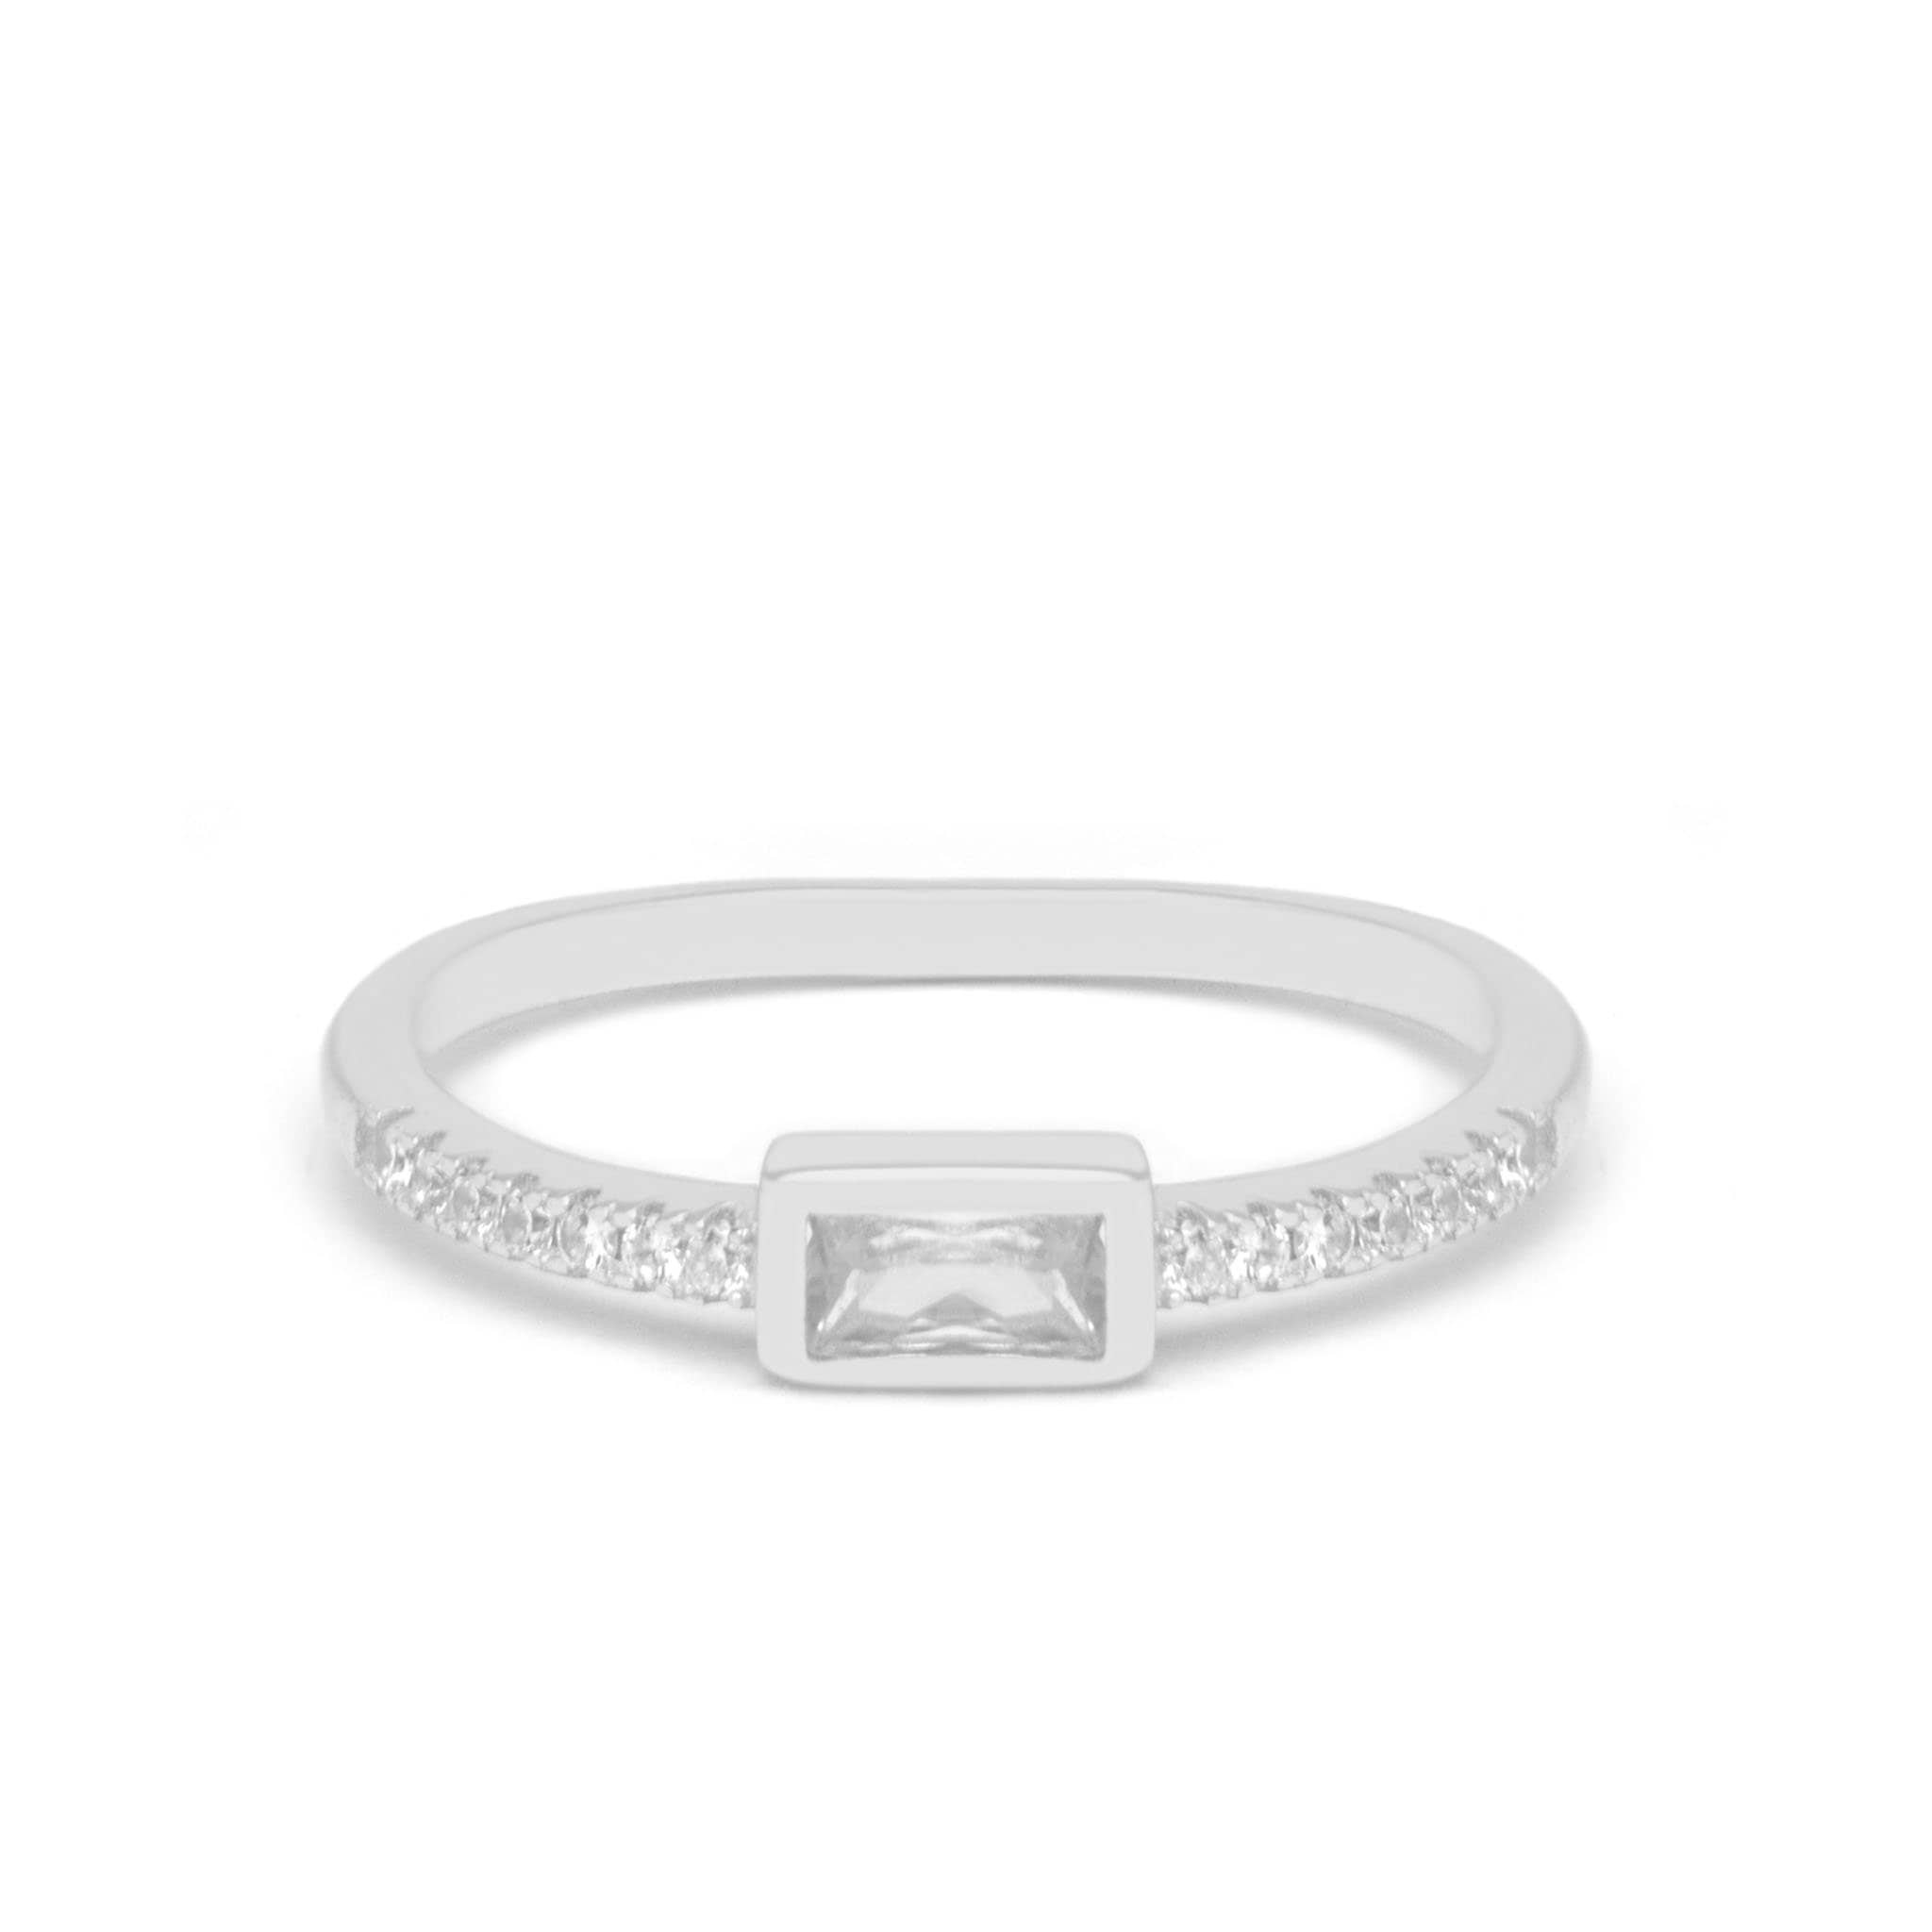 Jeanne's Jewels Rings White Gold / 5 Athena